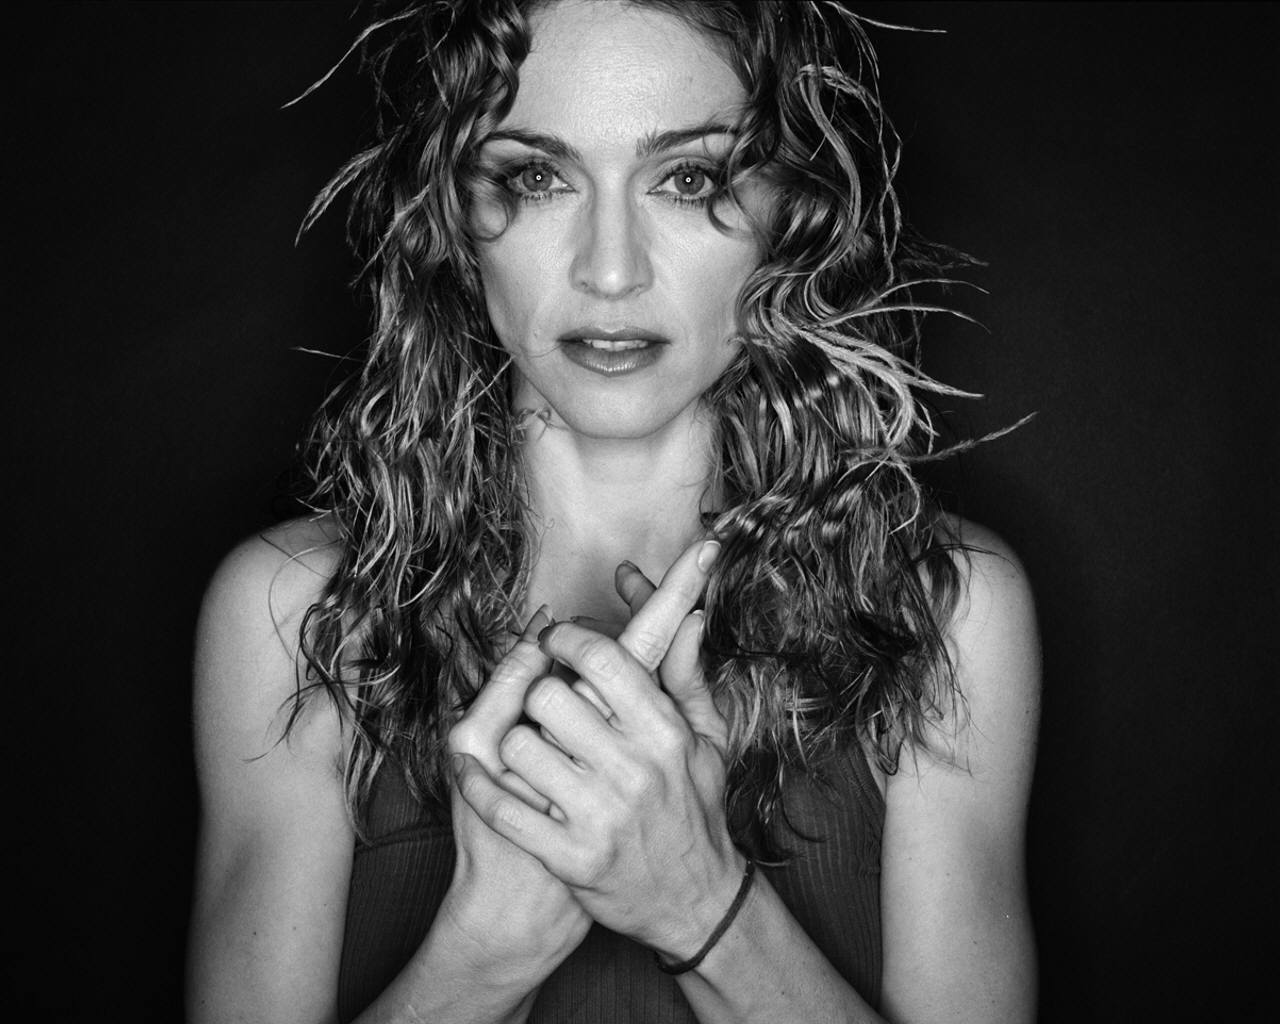 Madonna in 2013, A Year in Review